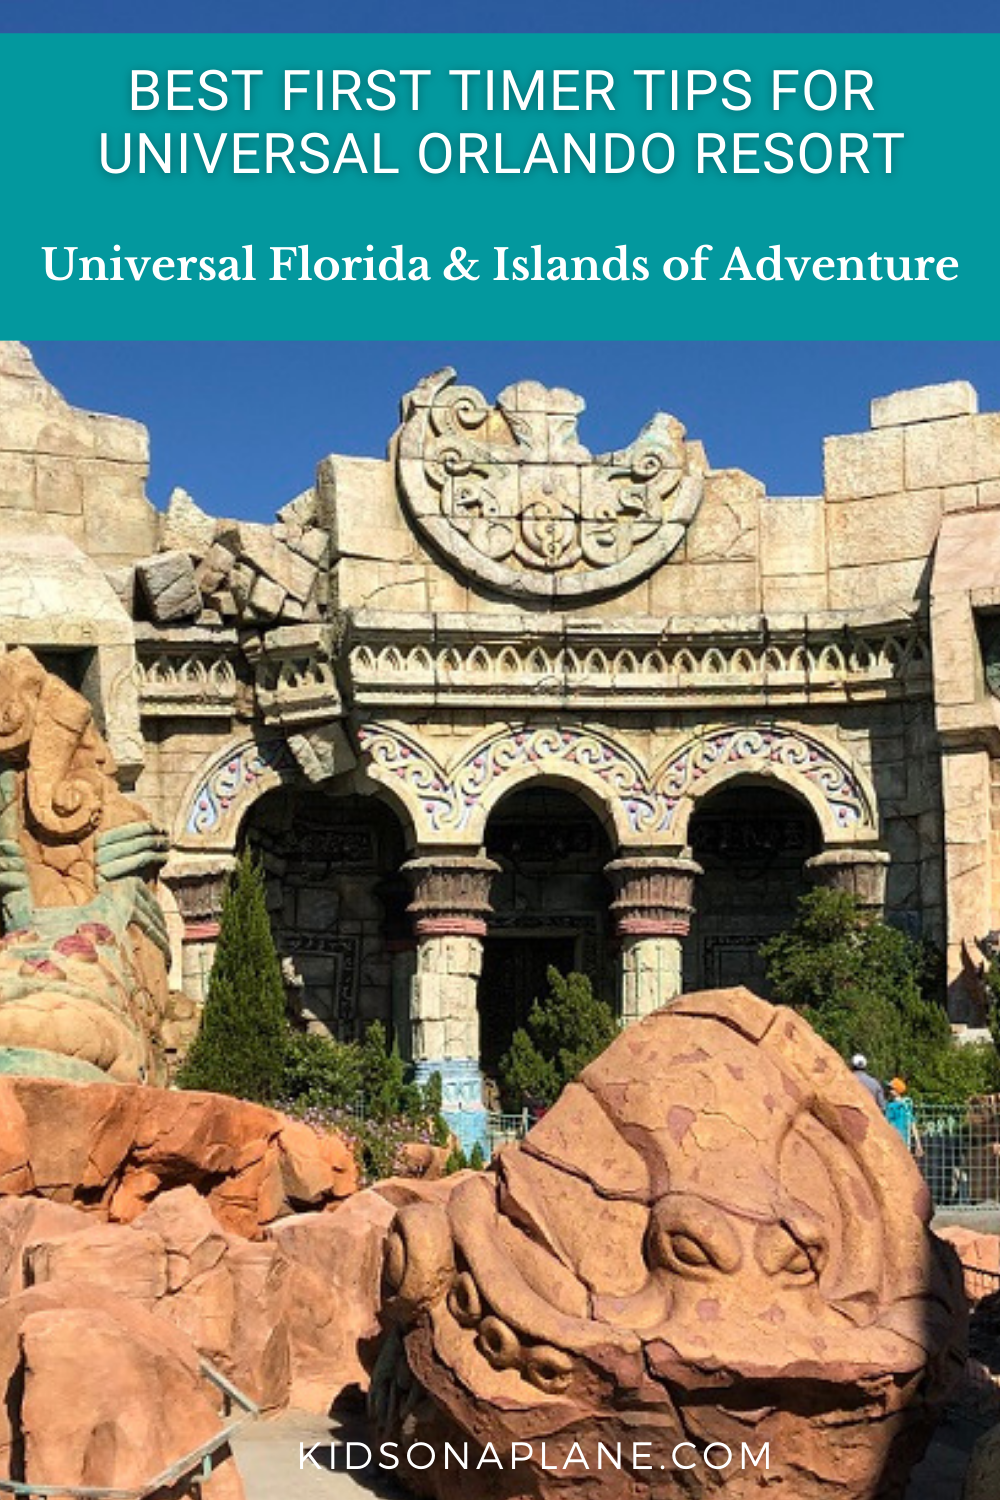 Best First Time Visitor Tips - Universal Florida and Islands of Adventure - Orlando with Kids